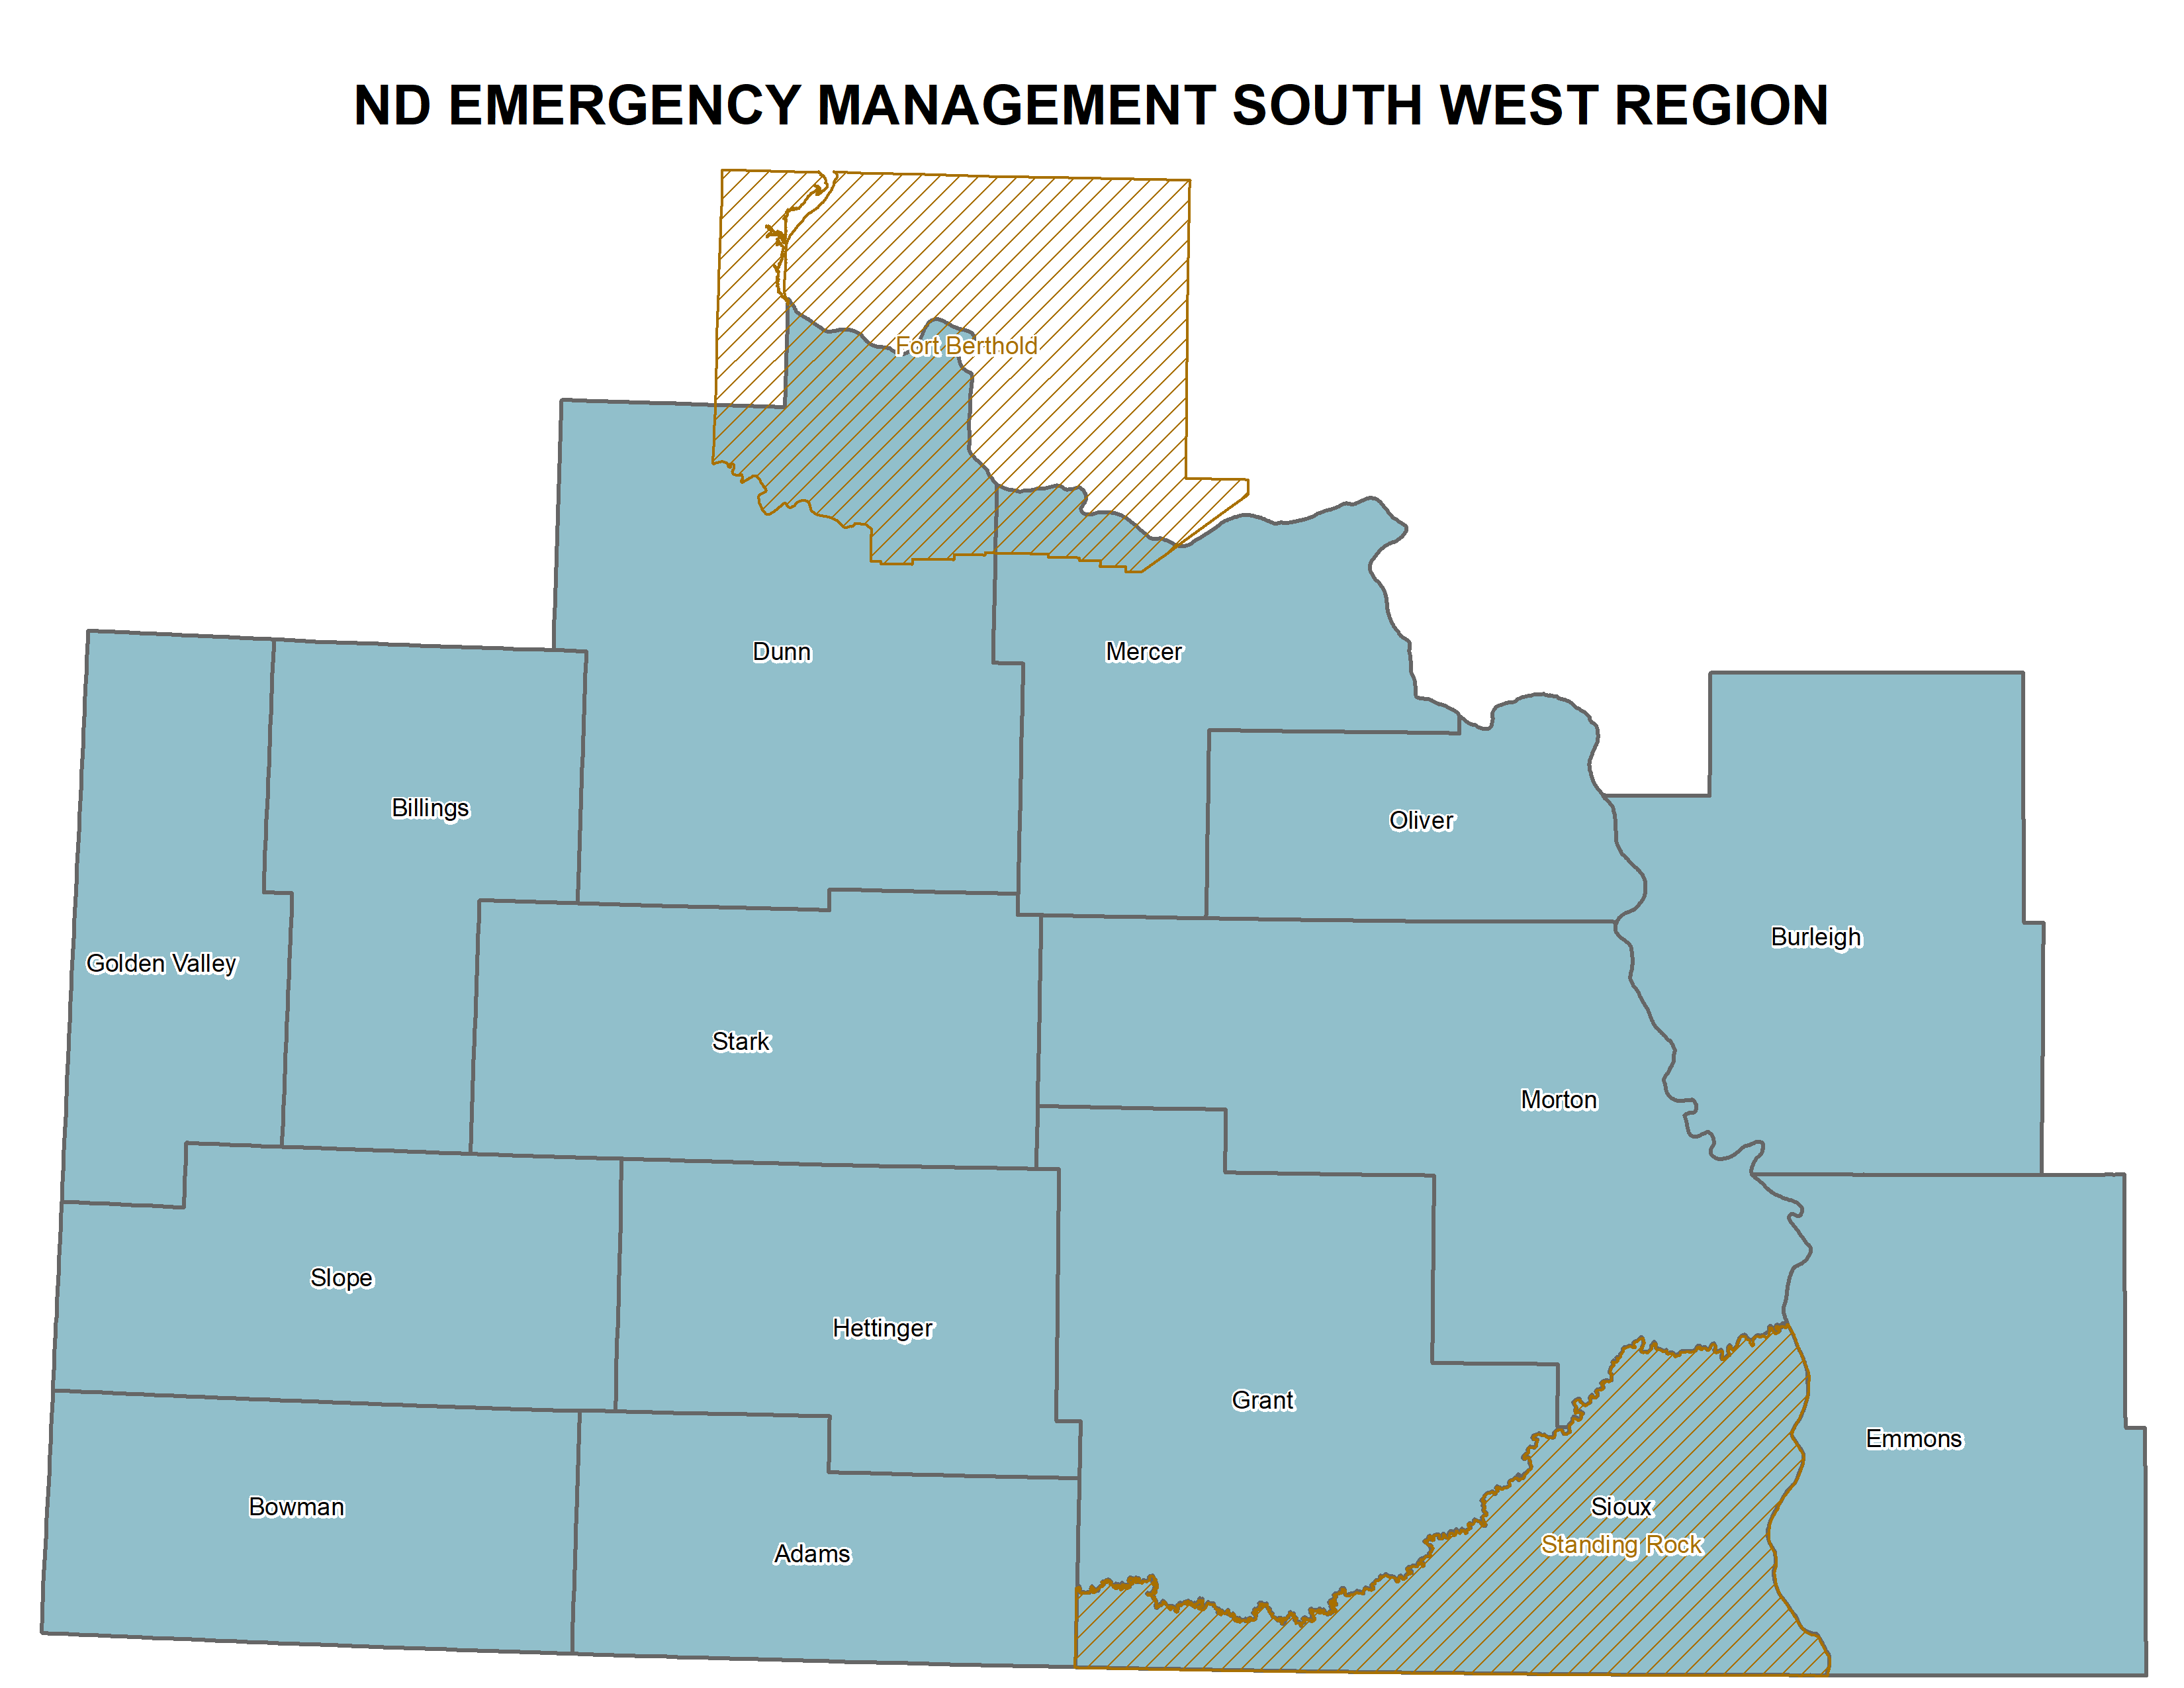 Southwest ND Region